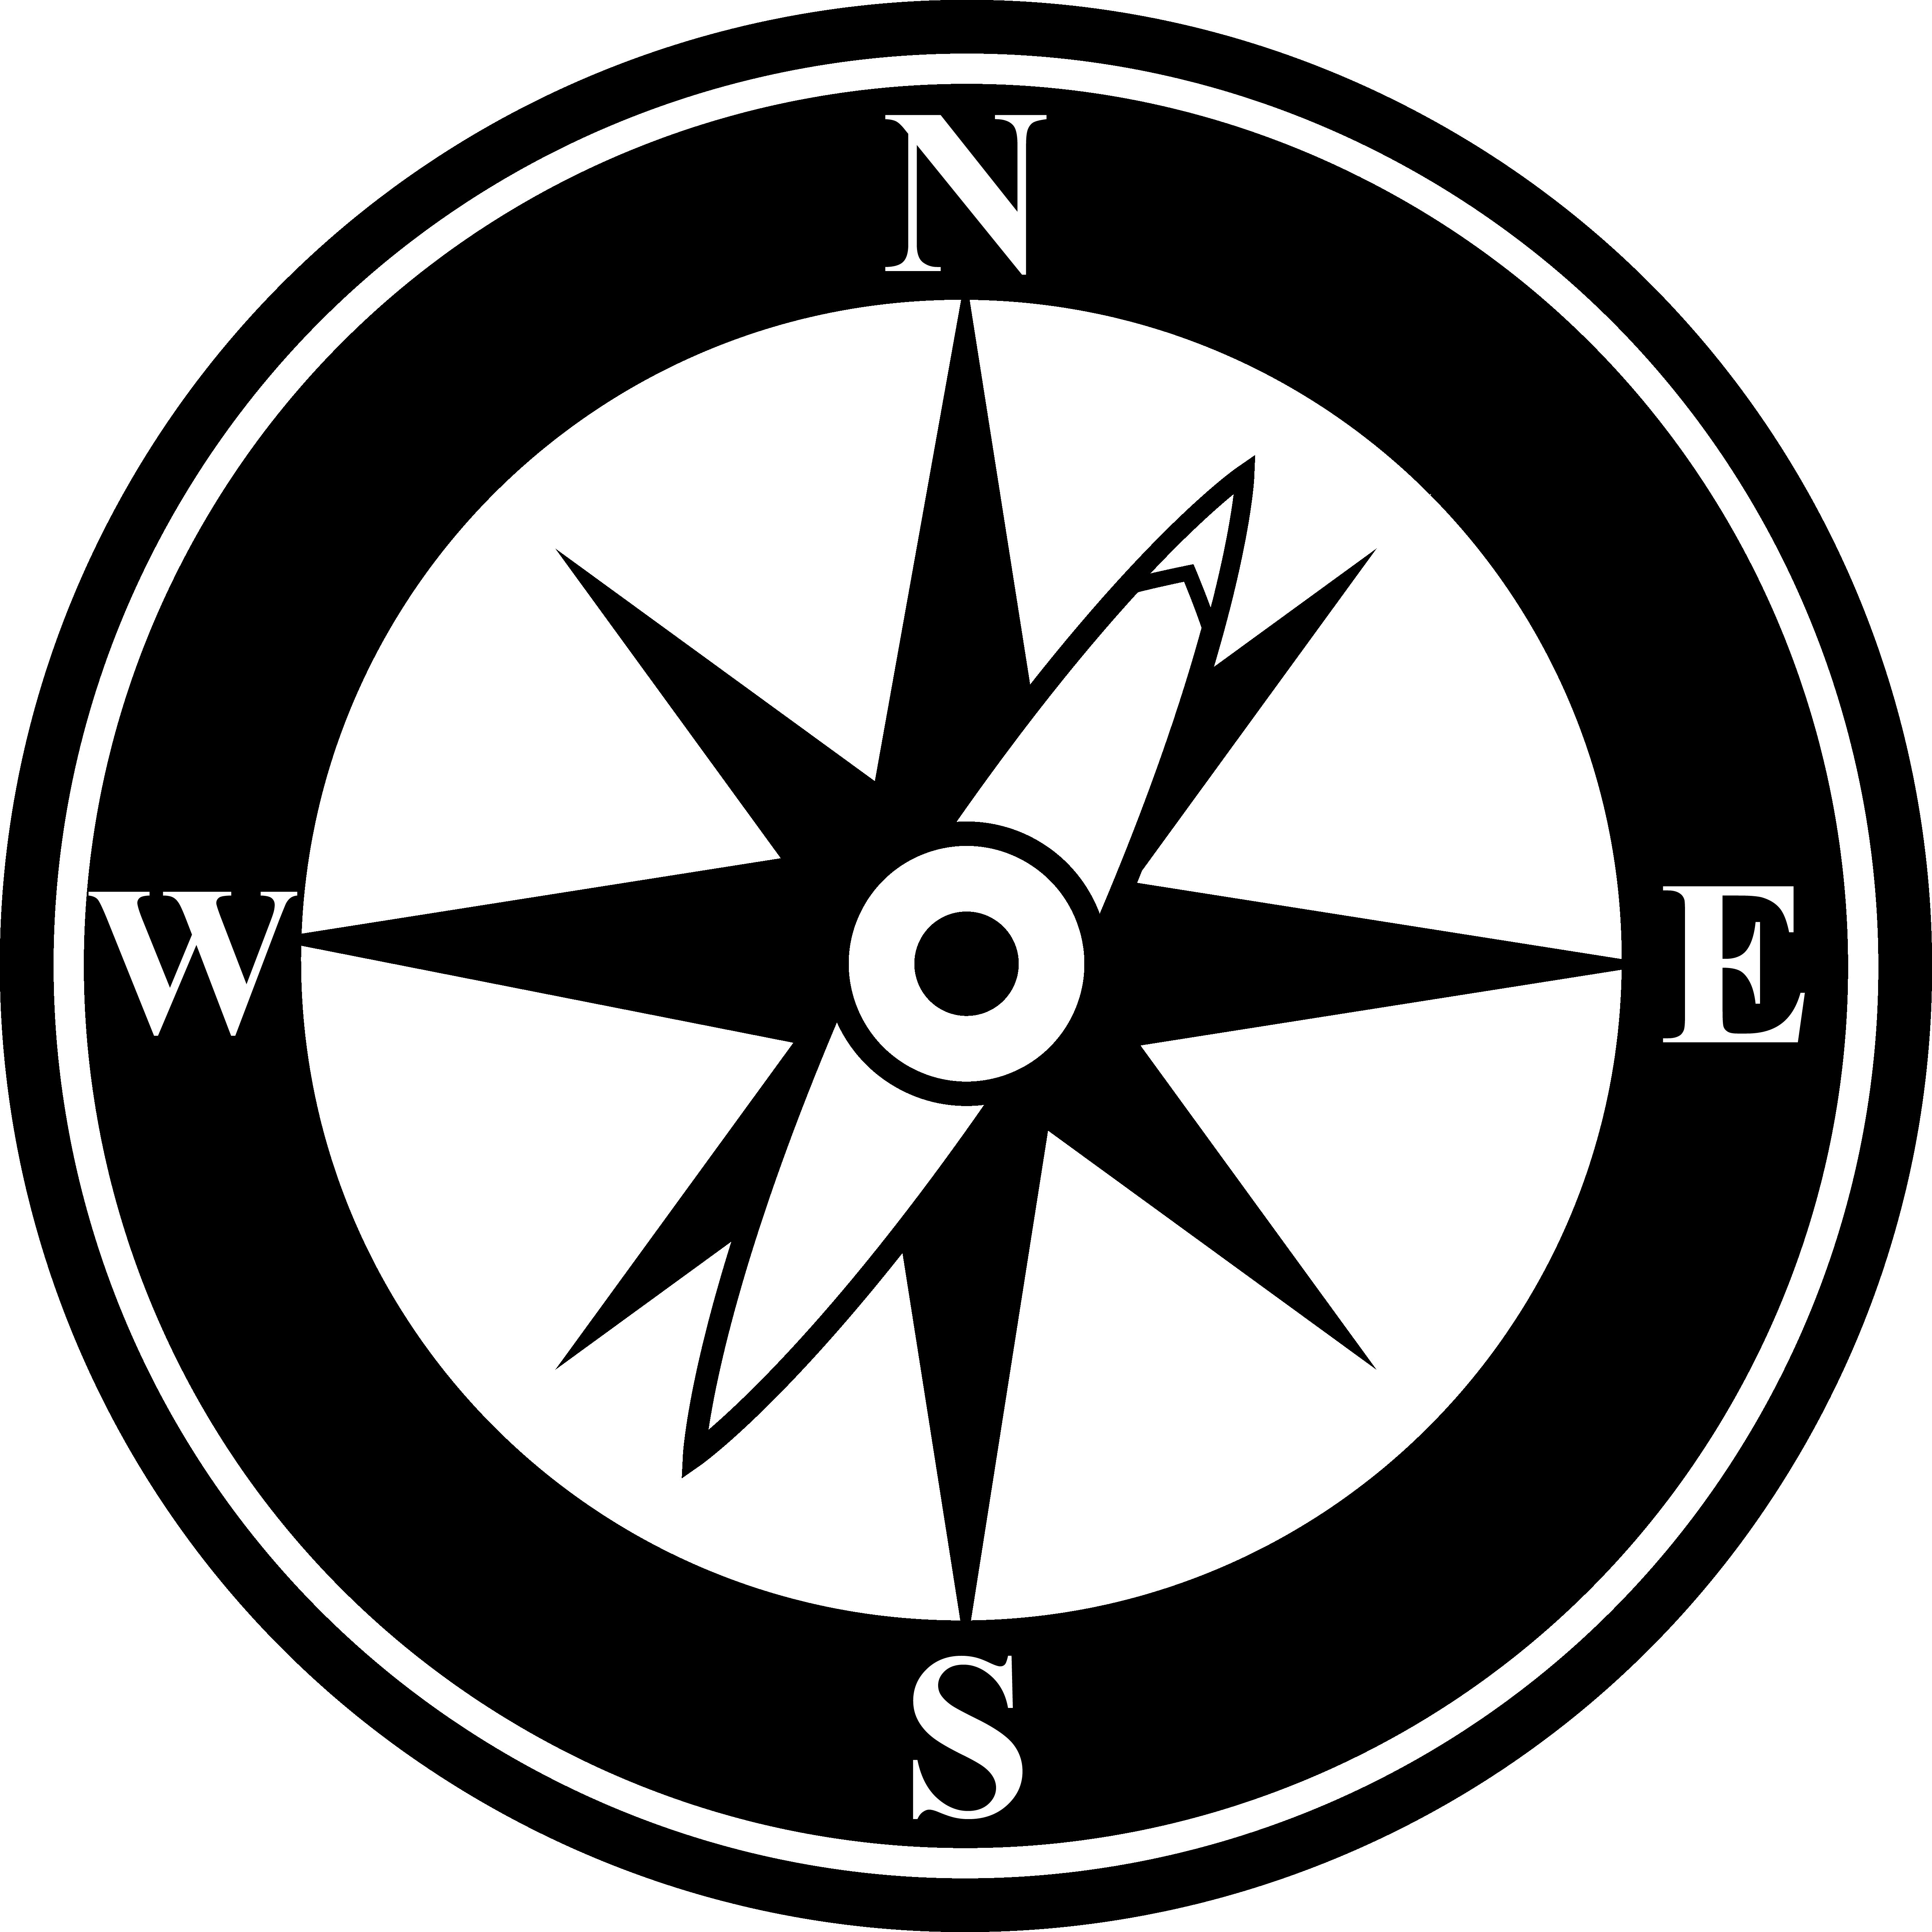 Vector pointers navigation. Compass rose tattoo designs